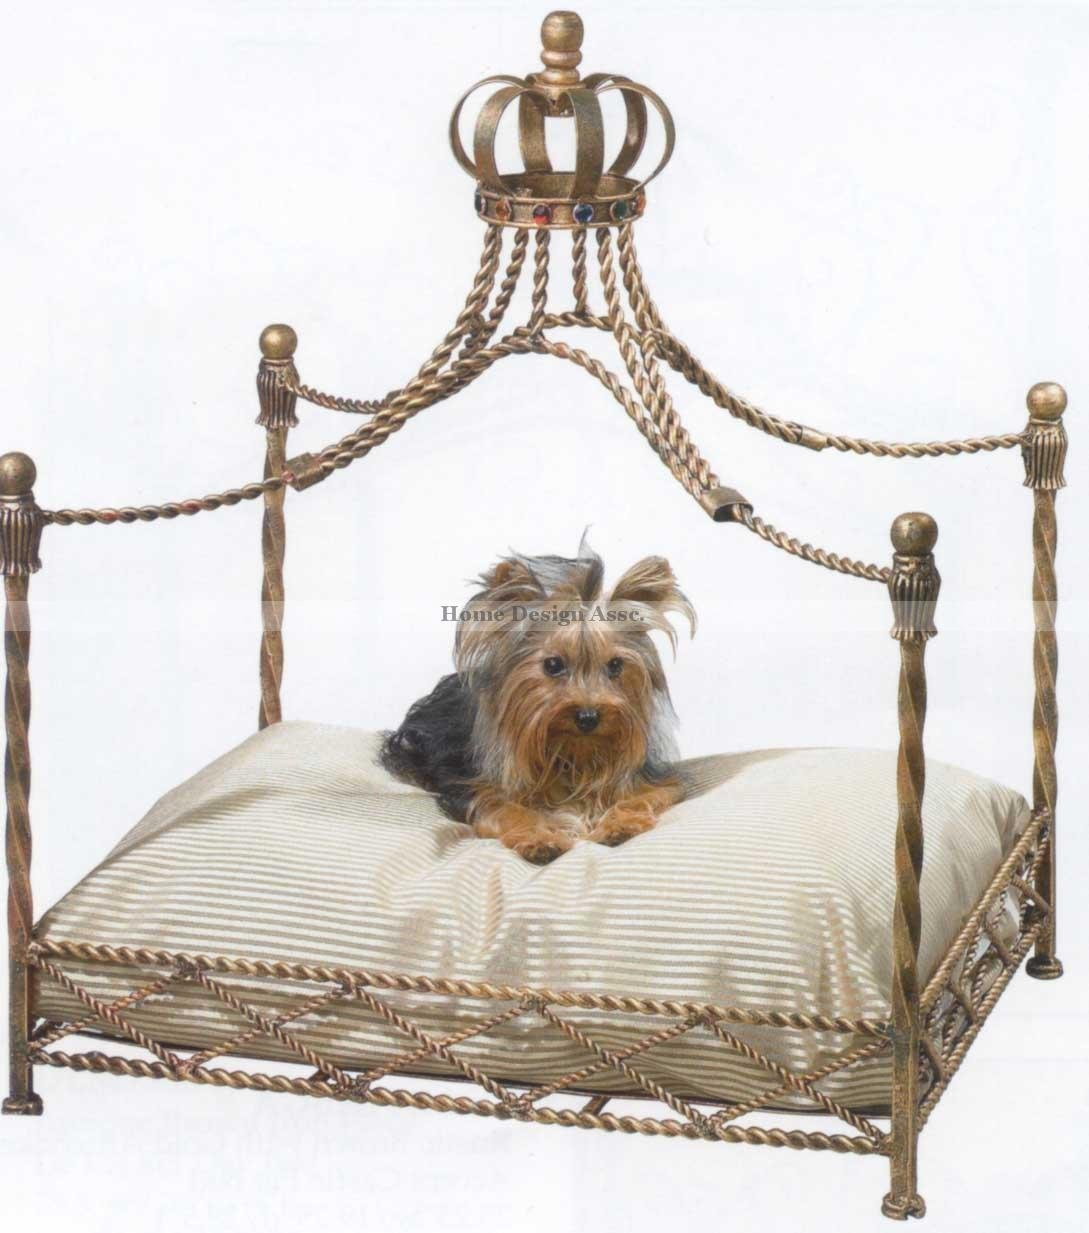 How To Get A Dog Out Of Your Bed